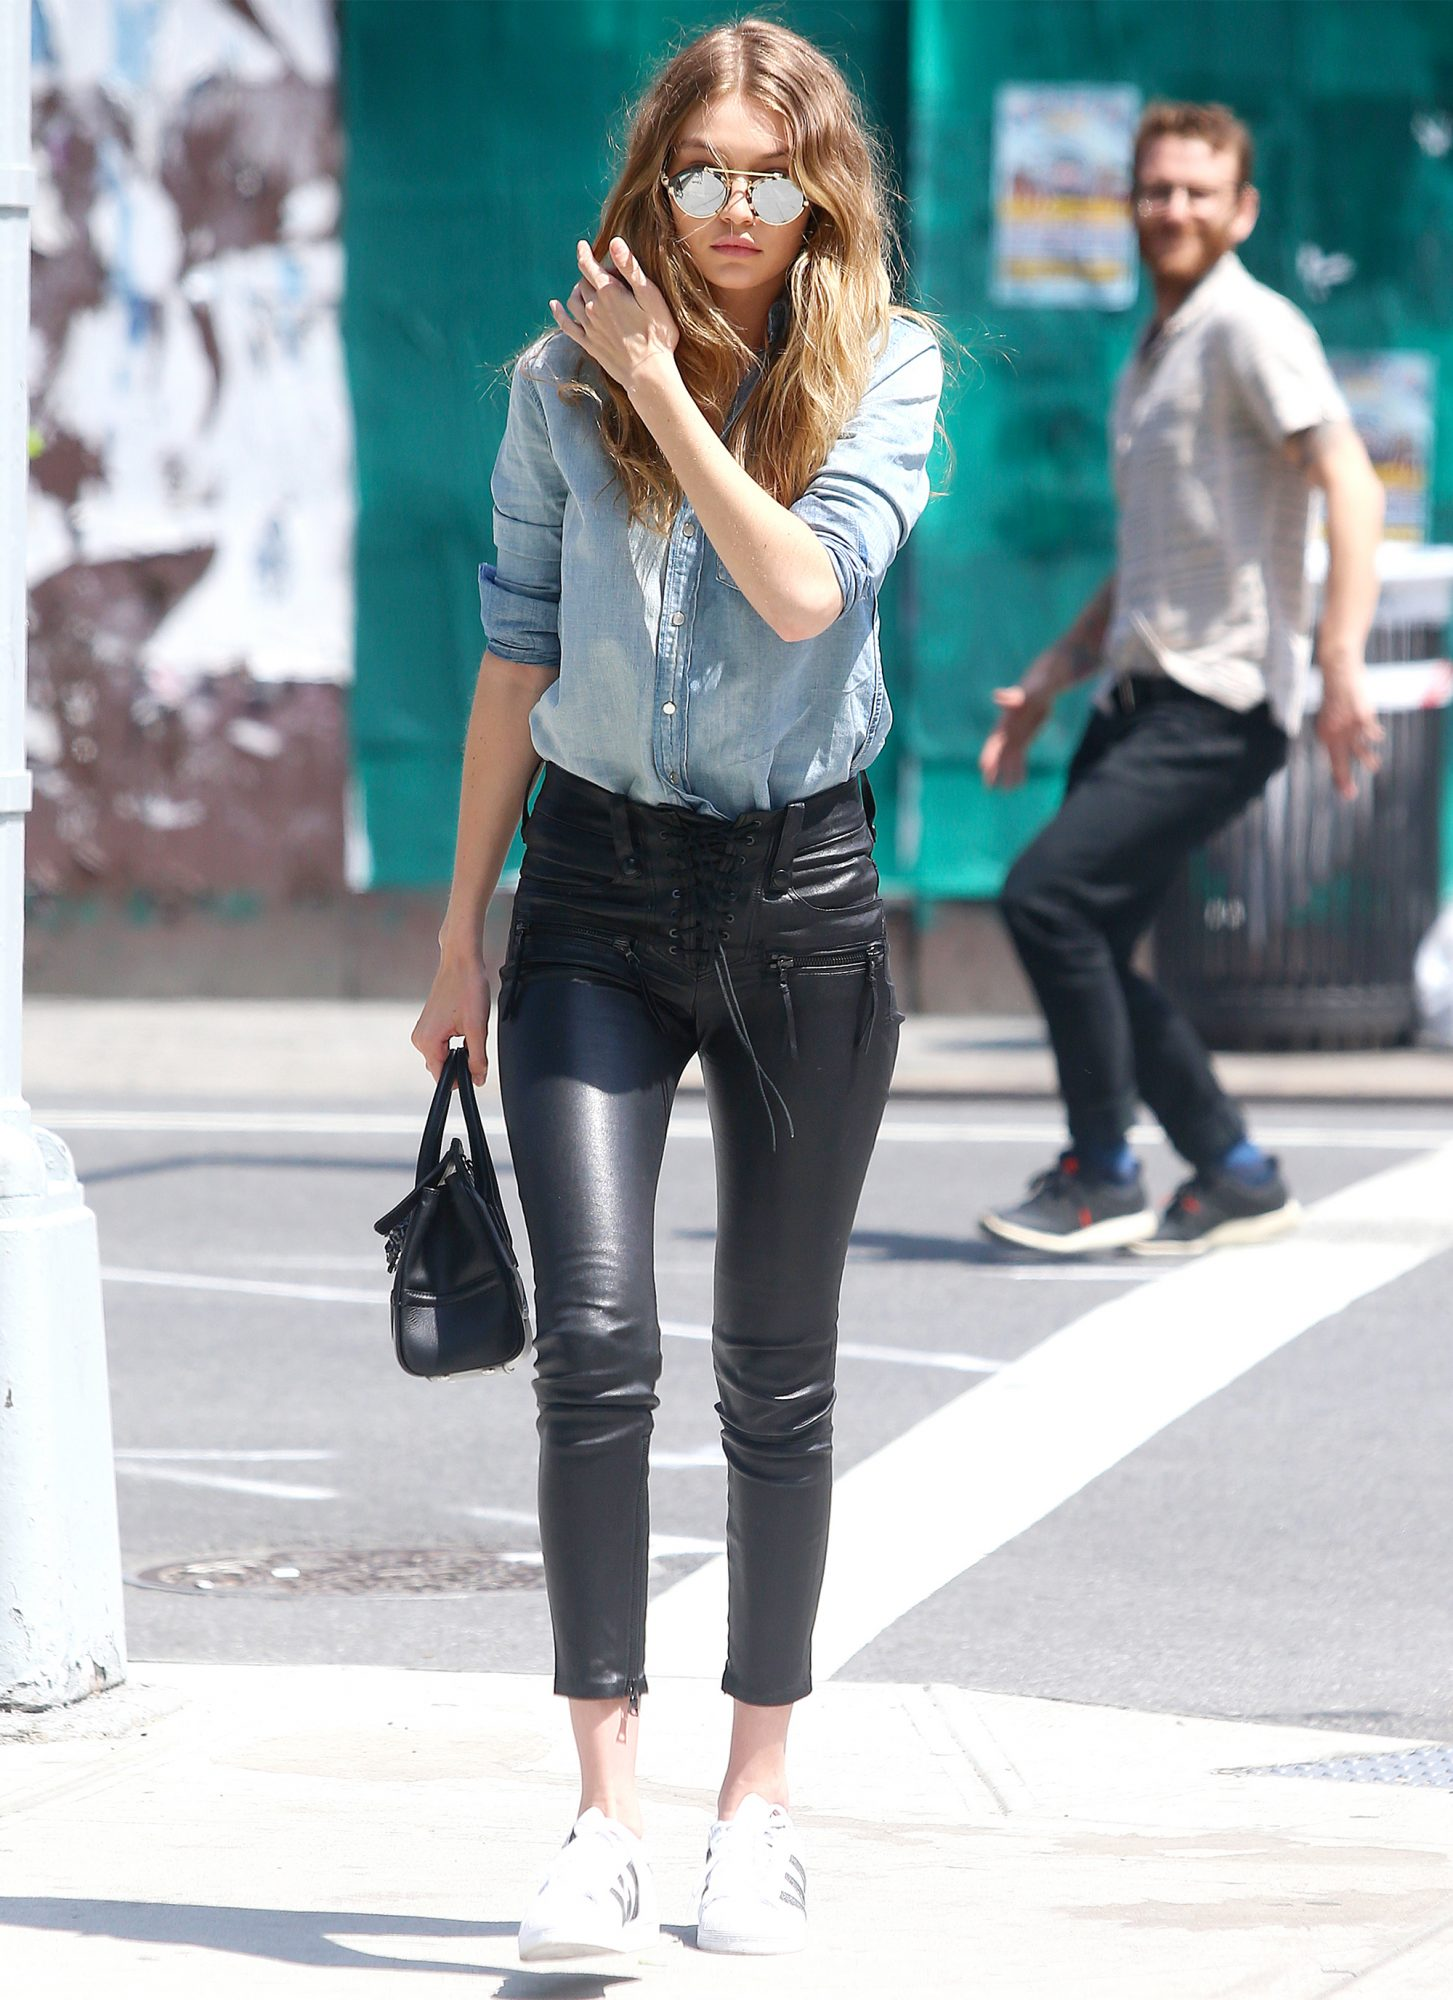 Gigi Hadid Makes Lace-Up Leather Pants Look Surprisingly Casual